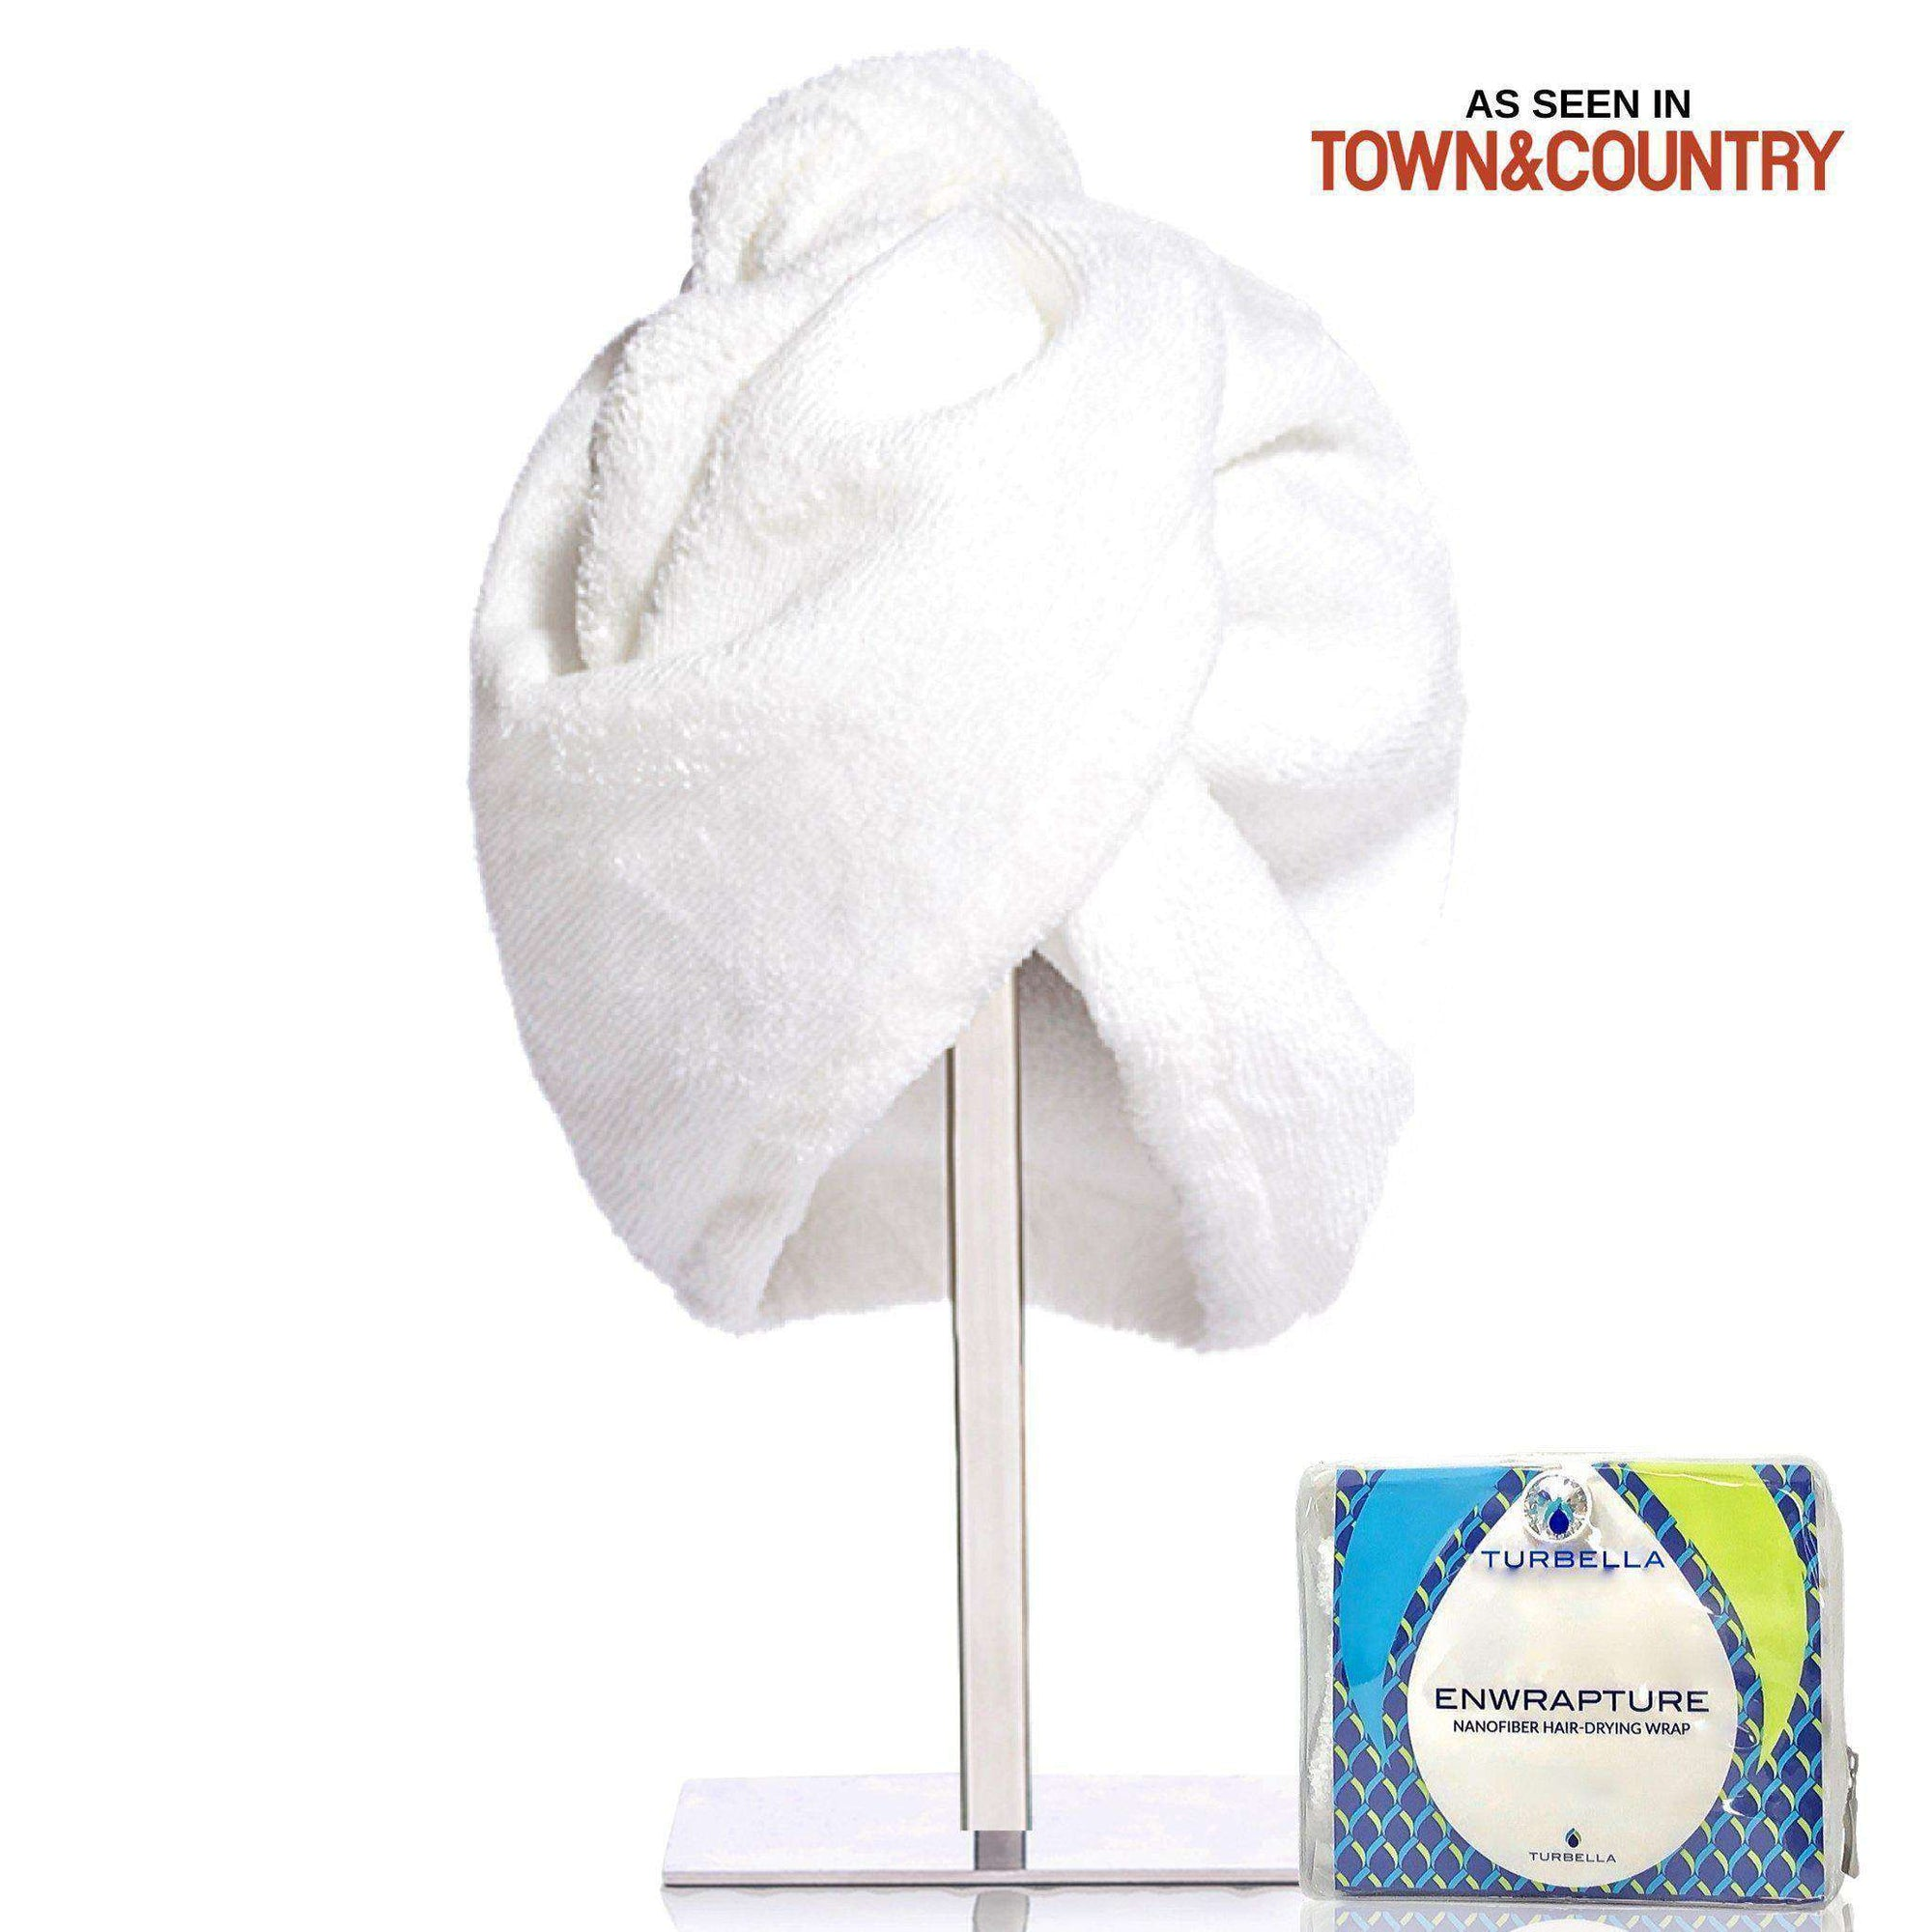 best hair towel turban twist to dry wet hair better than microfiber wrap Enwrapture with Swarovski button made in USA